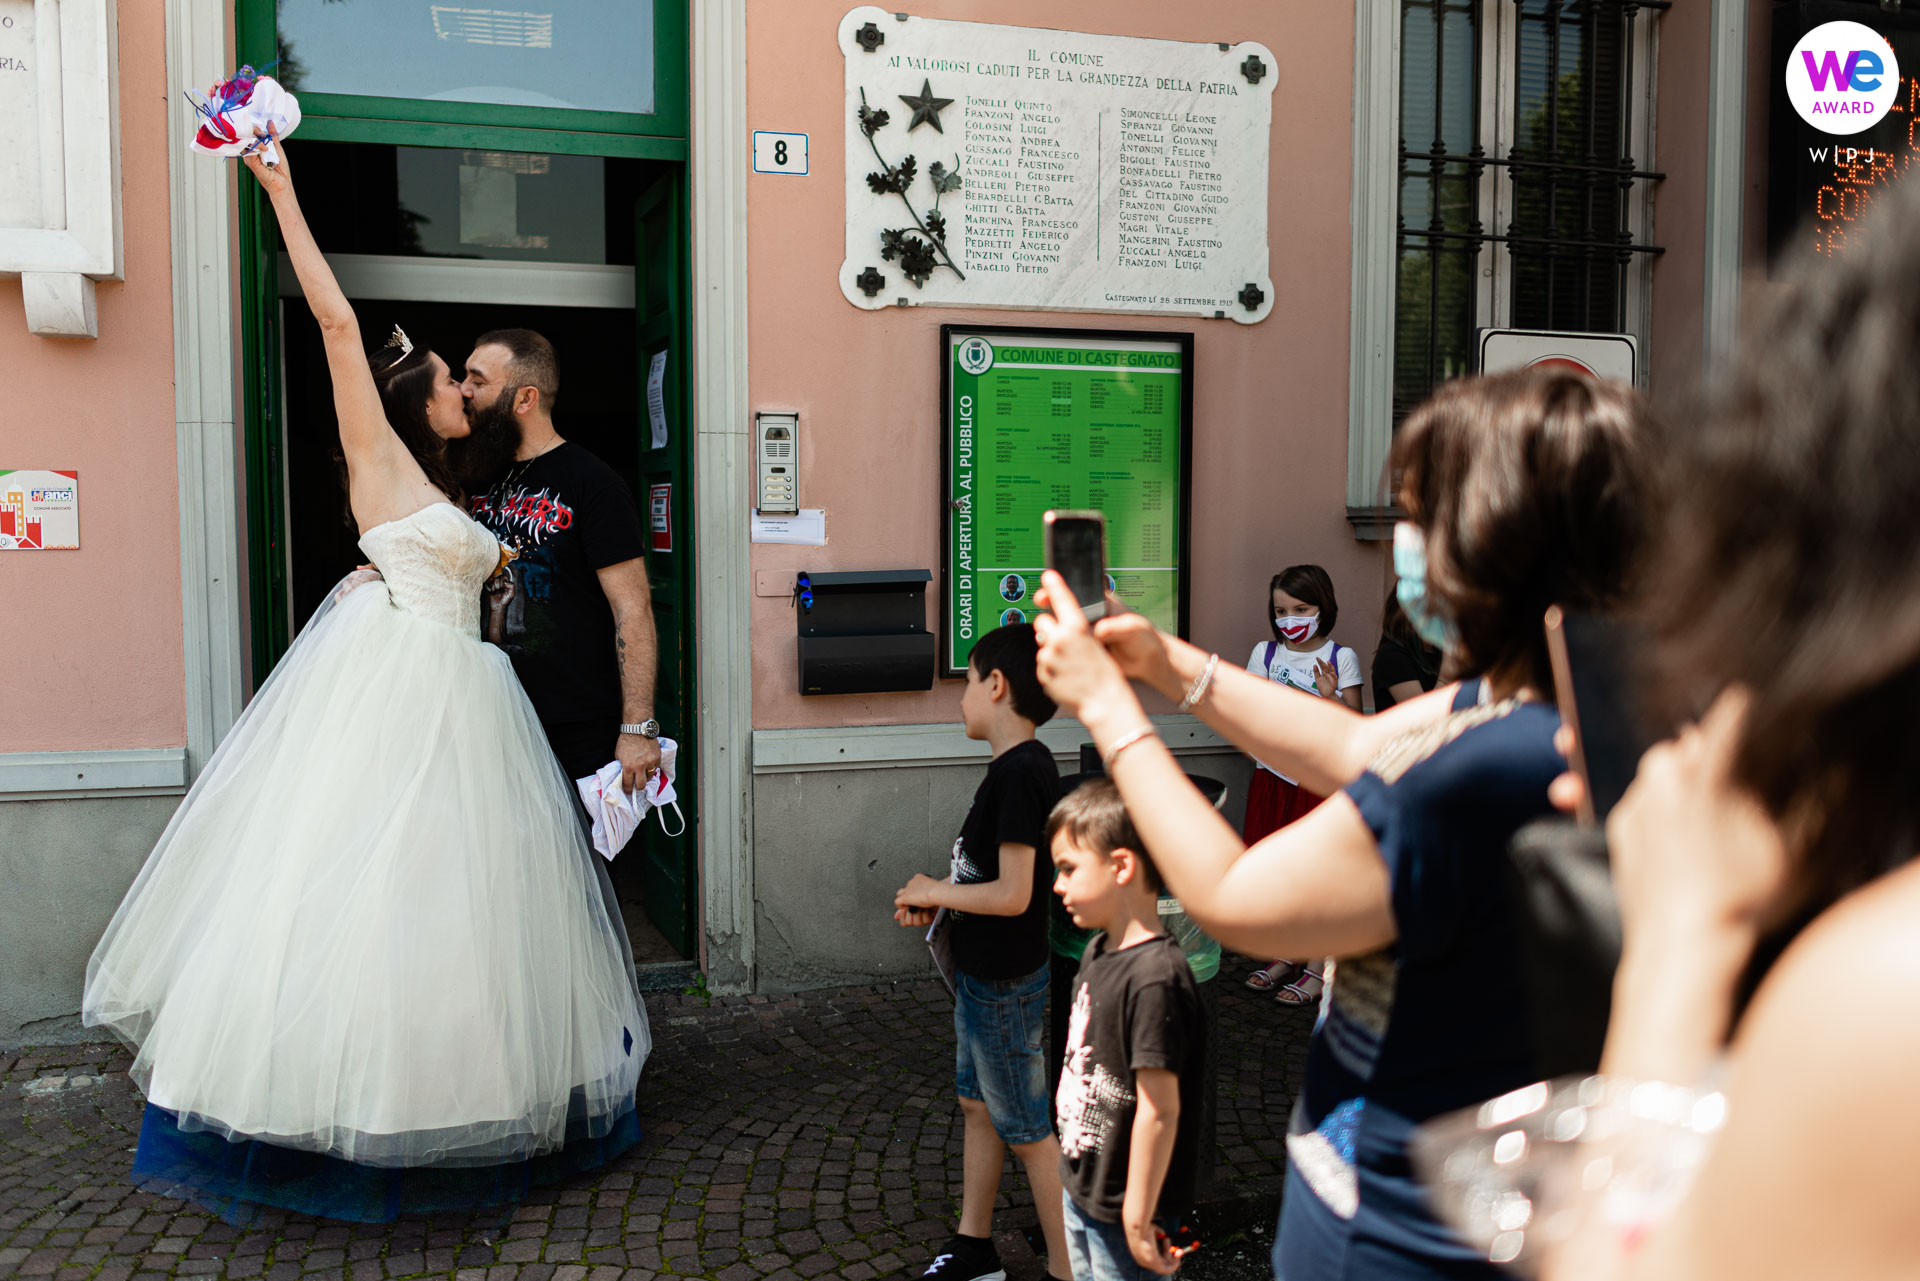 Wedding Photography in Brescia, Italy | The bride and groom seal their new marriage with a celebratory kiss after leaving the Castegnato City Hall